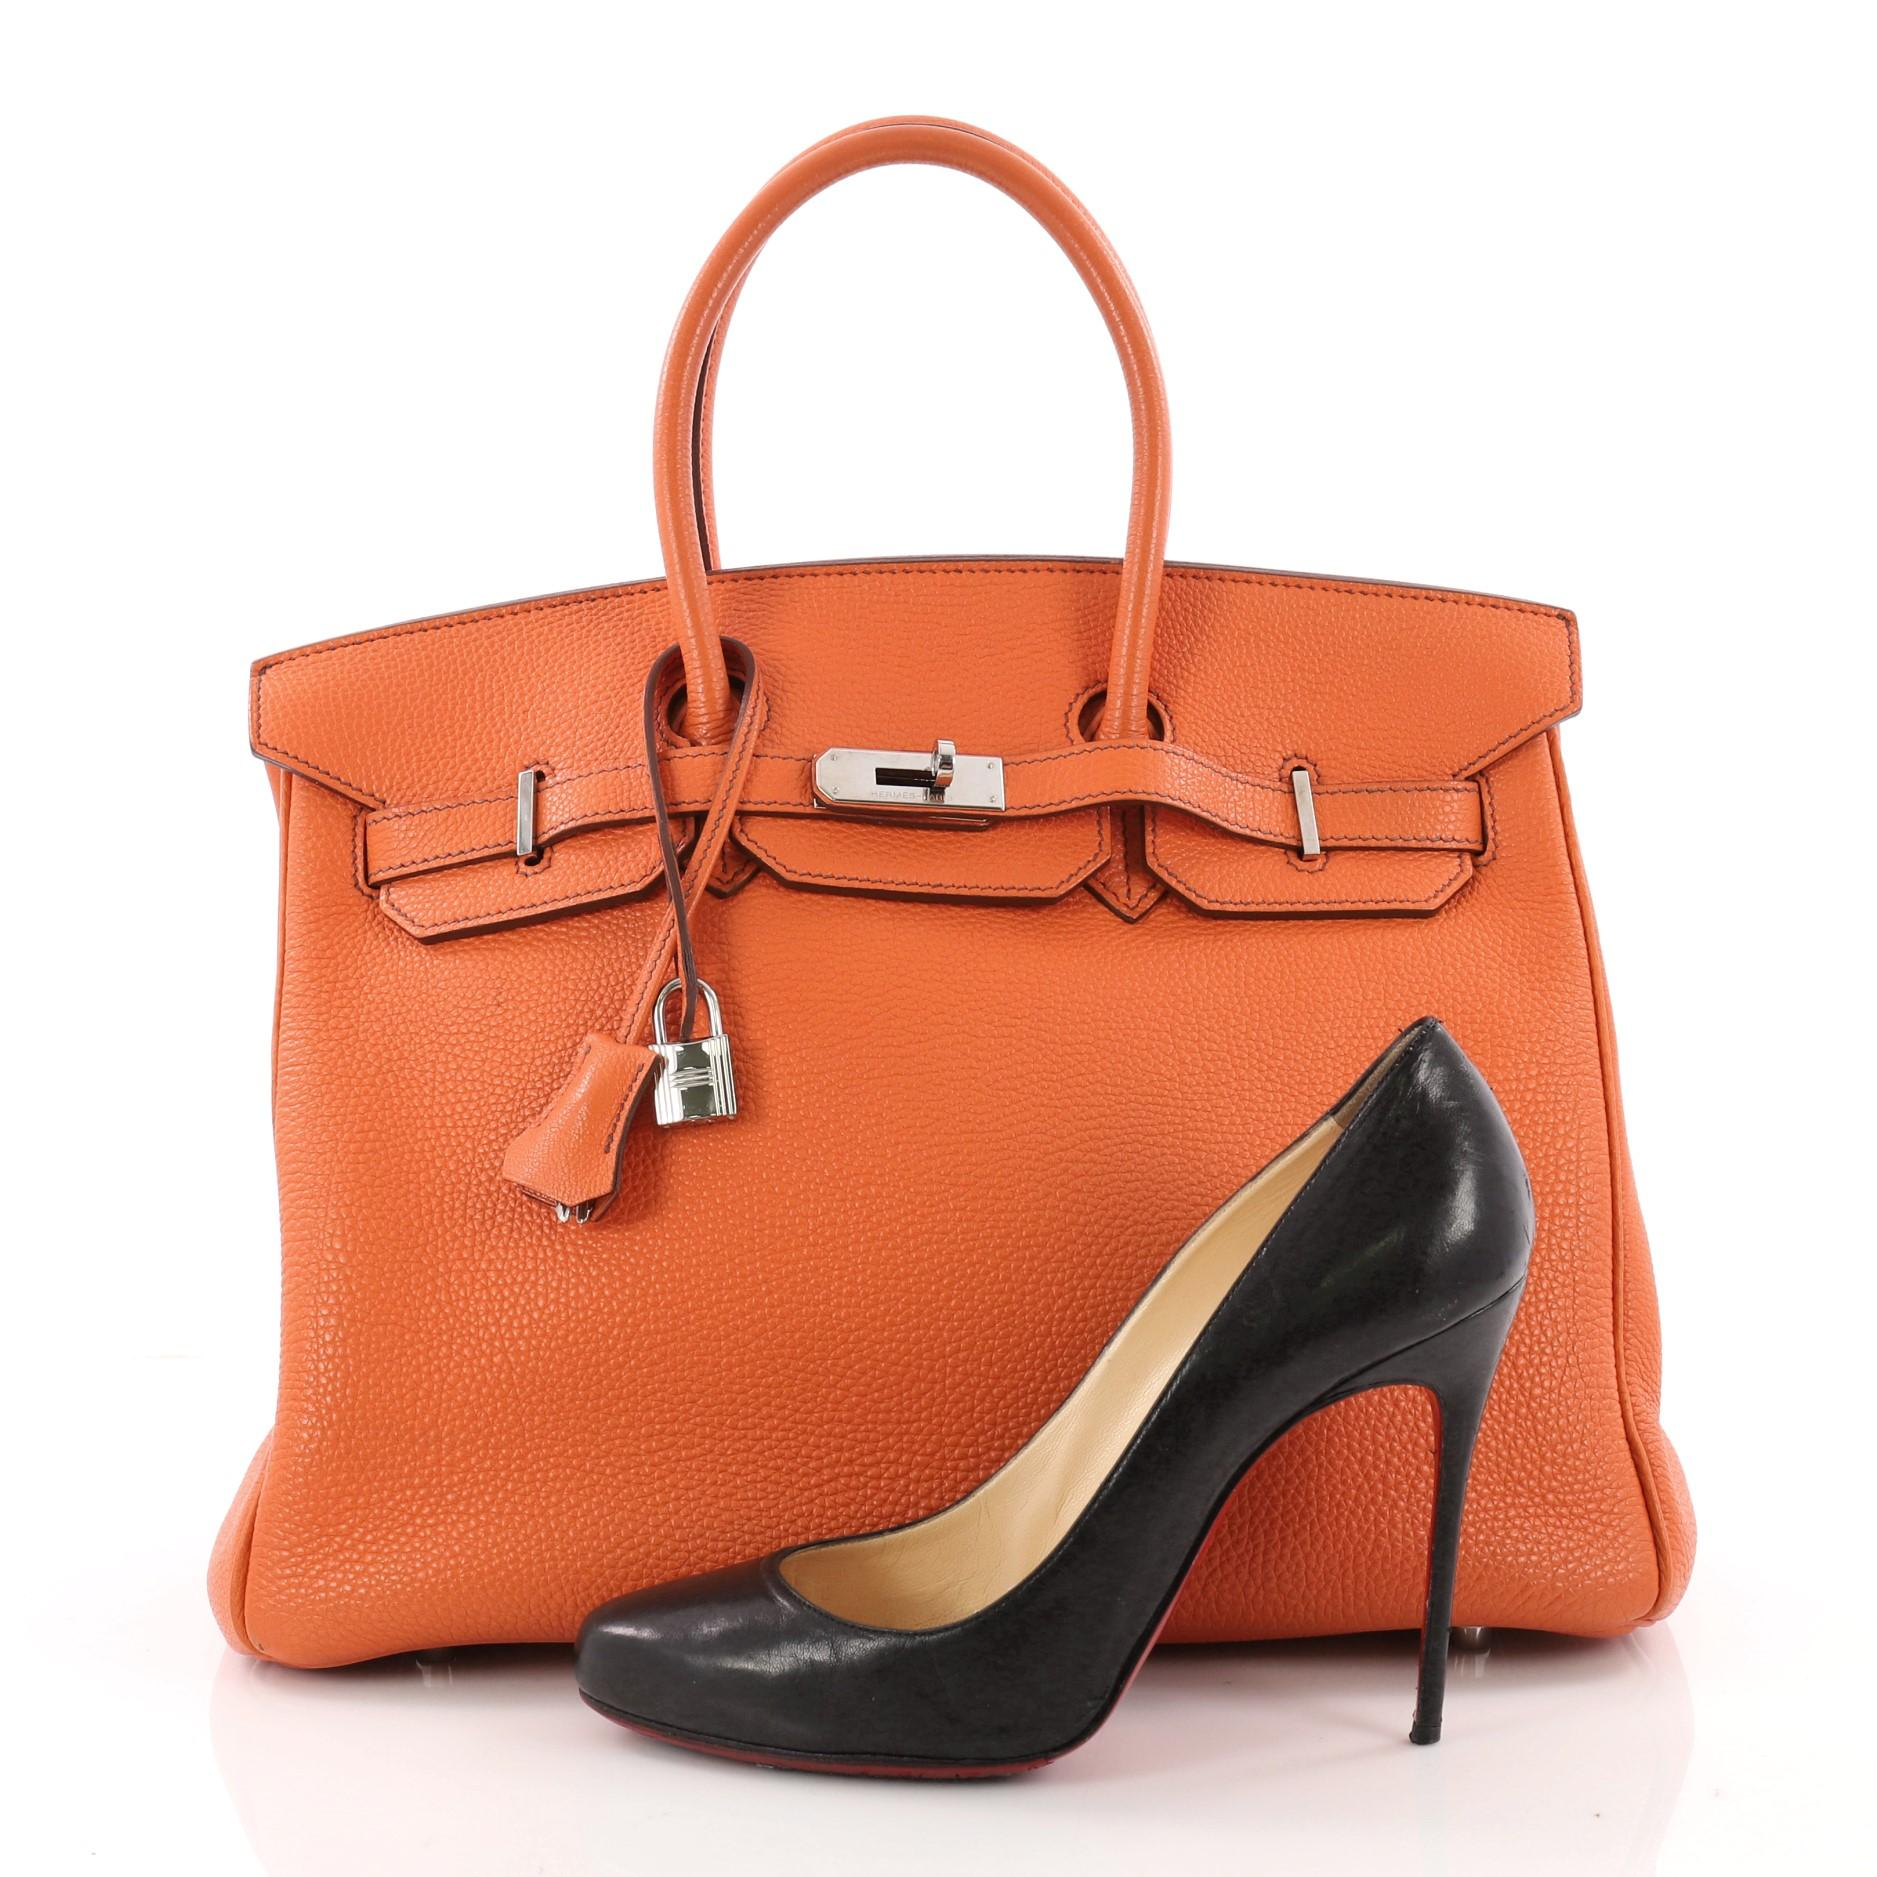 0a650e312c store this authentic hermes birkin handbag orange togo with palladium  hardware 35 is synonymous to traditional